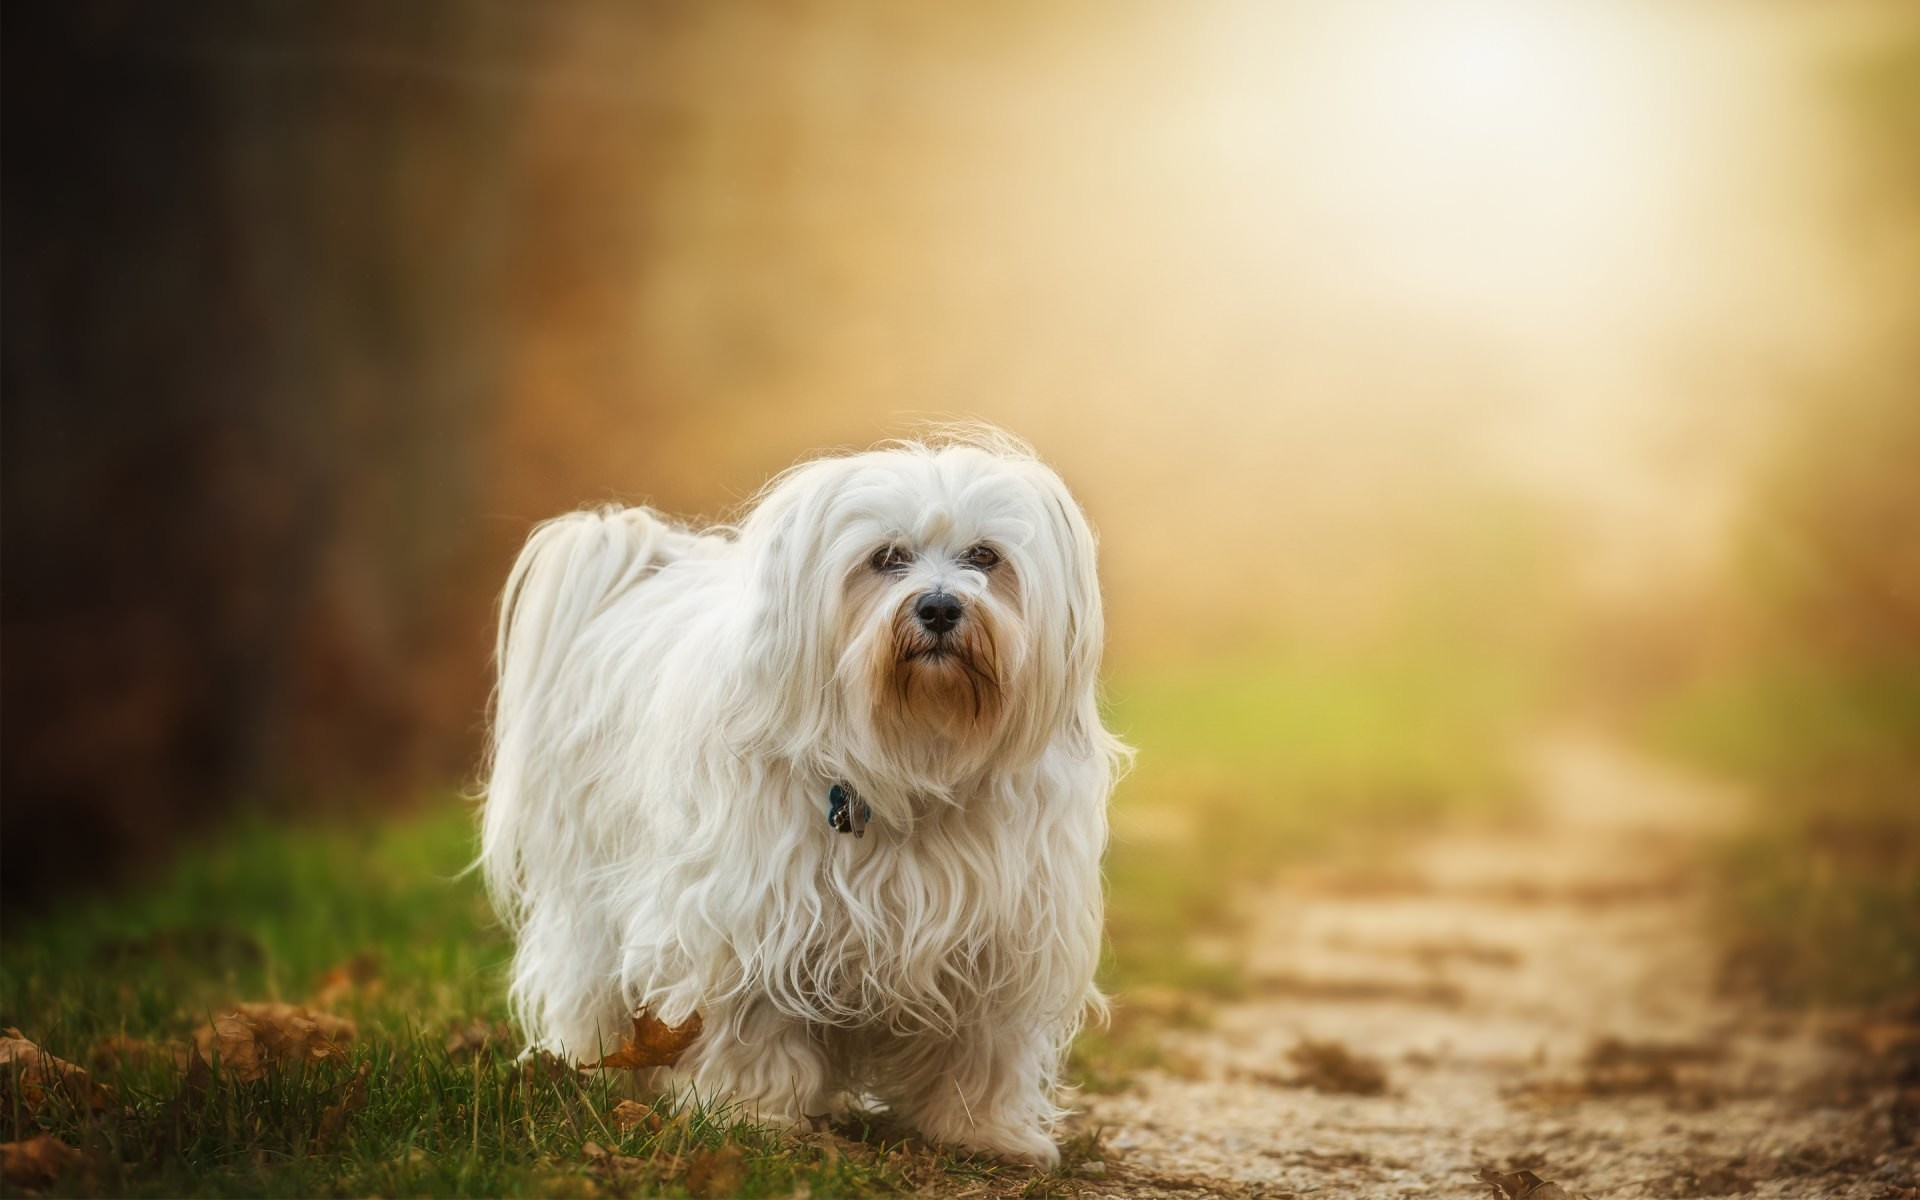 54 dog backgrounds download free amazing wallpapers of dogs 1920x1200 awesome pretty havanese dog background voltagebd Choice Image